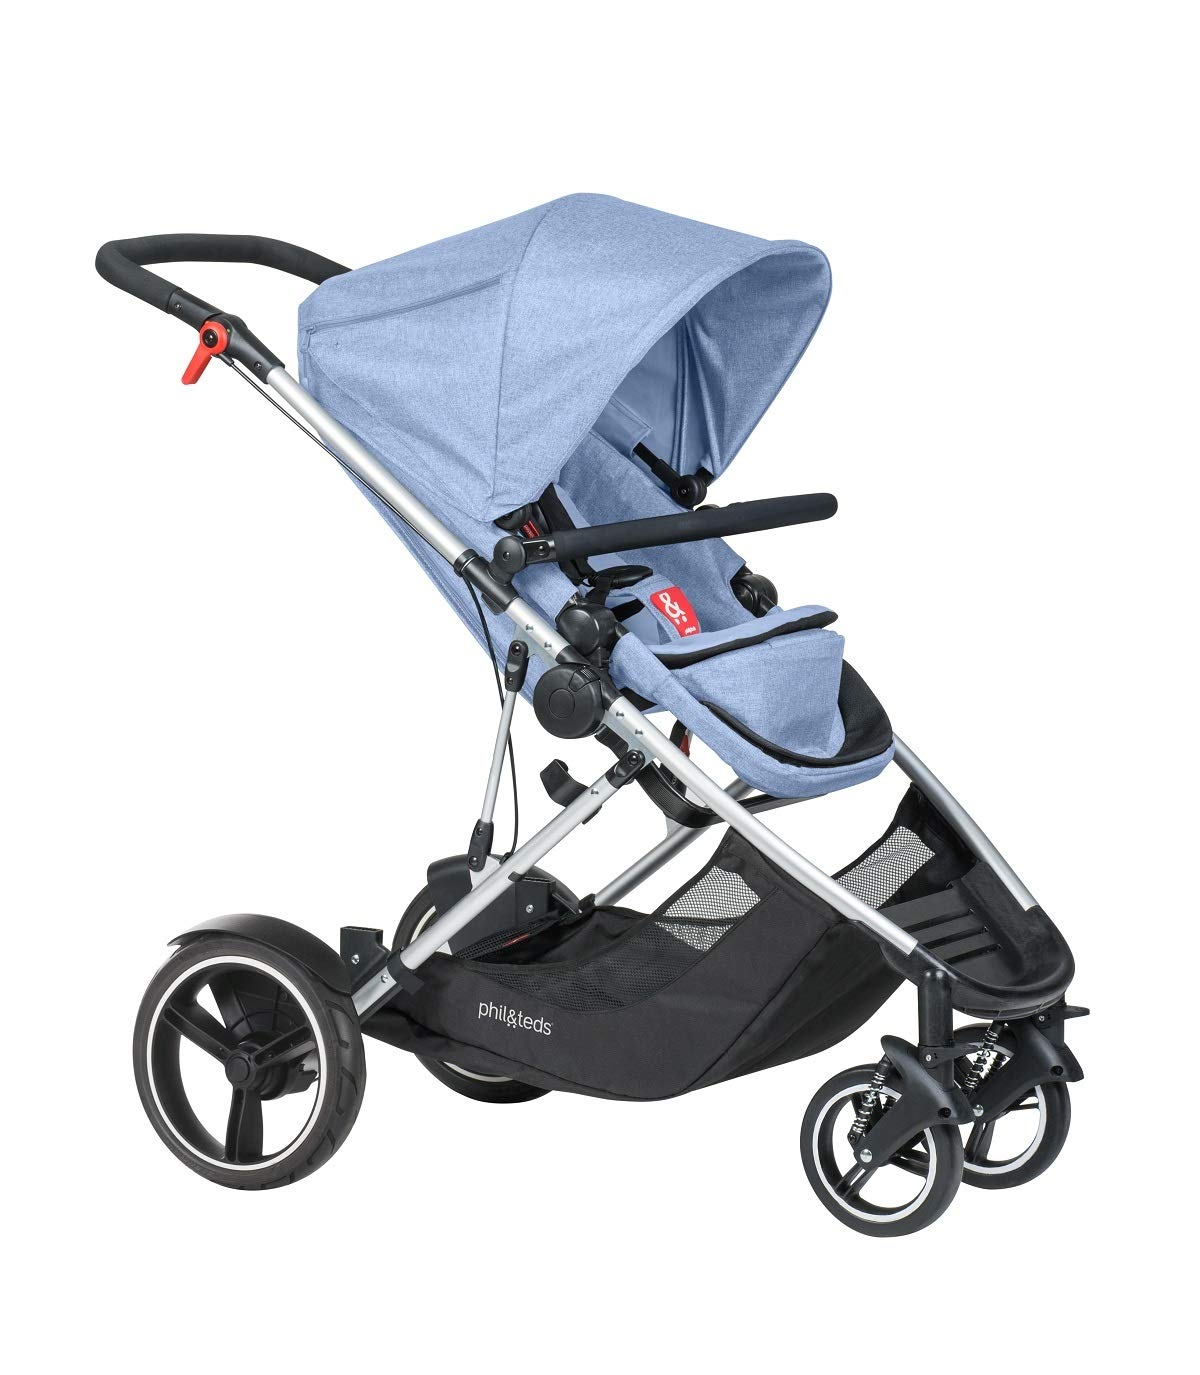 phil&teds Voyager Buggy Pushchair, Blue phil&teds 4-in-1 modular seat with four modes: parent facing, forward facing, lay flat bassinet (on buggy) and free standing bassinet (off buggy) Revolutionary stand fold with 2 seats on Double kit easily converts to lie flat mode as well 1